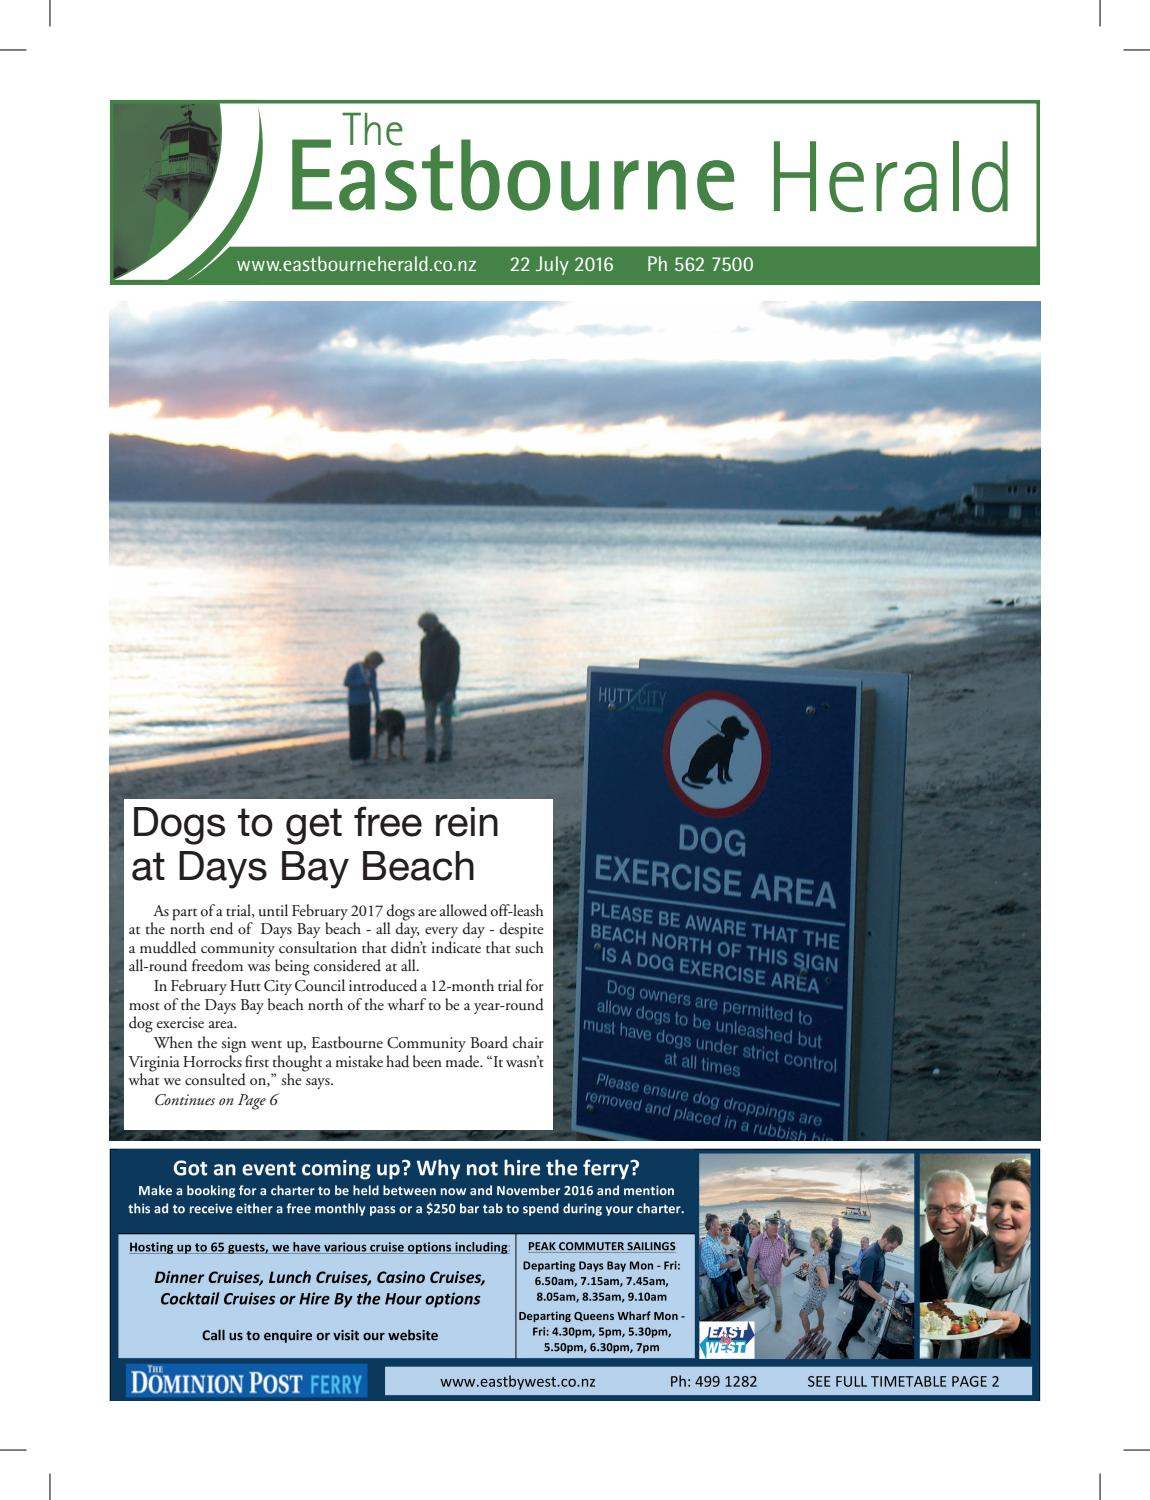 Possible questions to ask in an interview with the Eastbourne Borough Council about Eastbourne's sea defences.